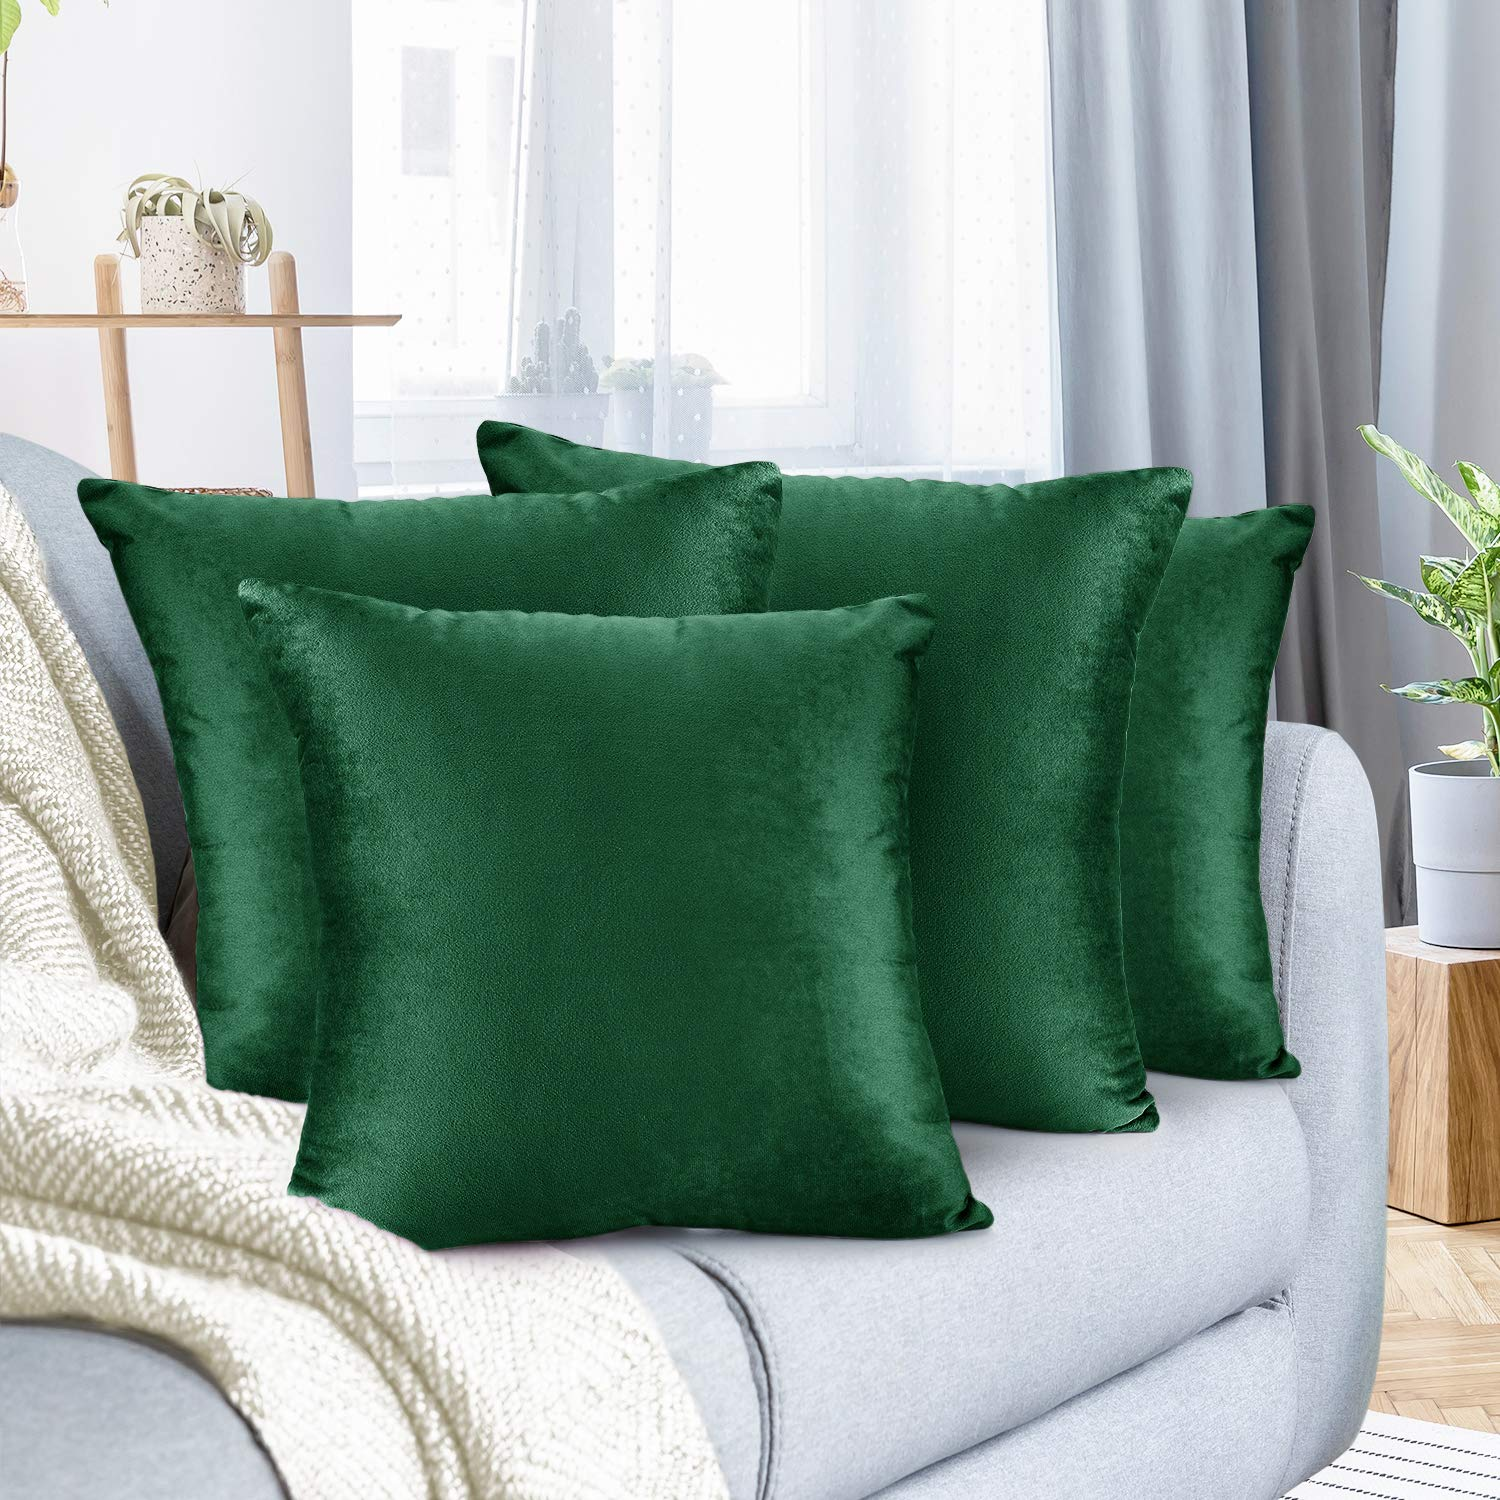 """Nestl Bedding Throw Pillow Cover 22"""" x 22"""" Soft Square Decorative Throw Pillow Covers Cozy Velvet Cushion Case for Sofa Couch Bedroom, Set of 4, Hunter Green"""